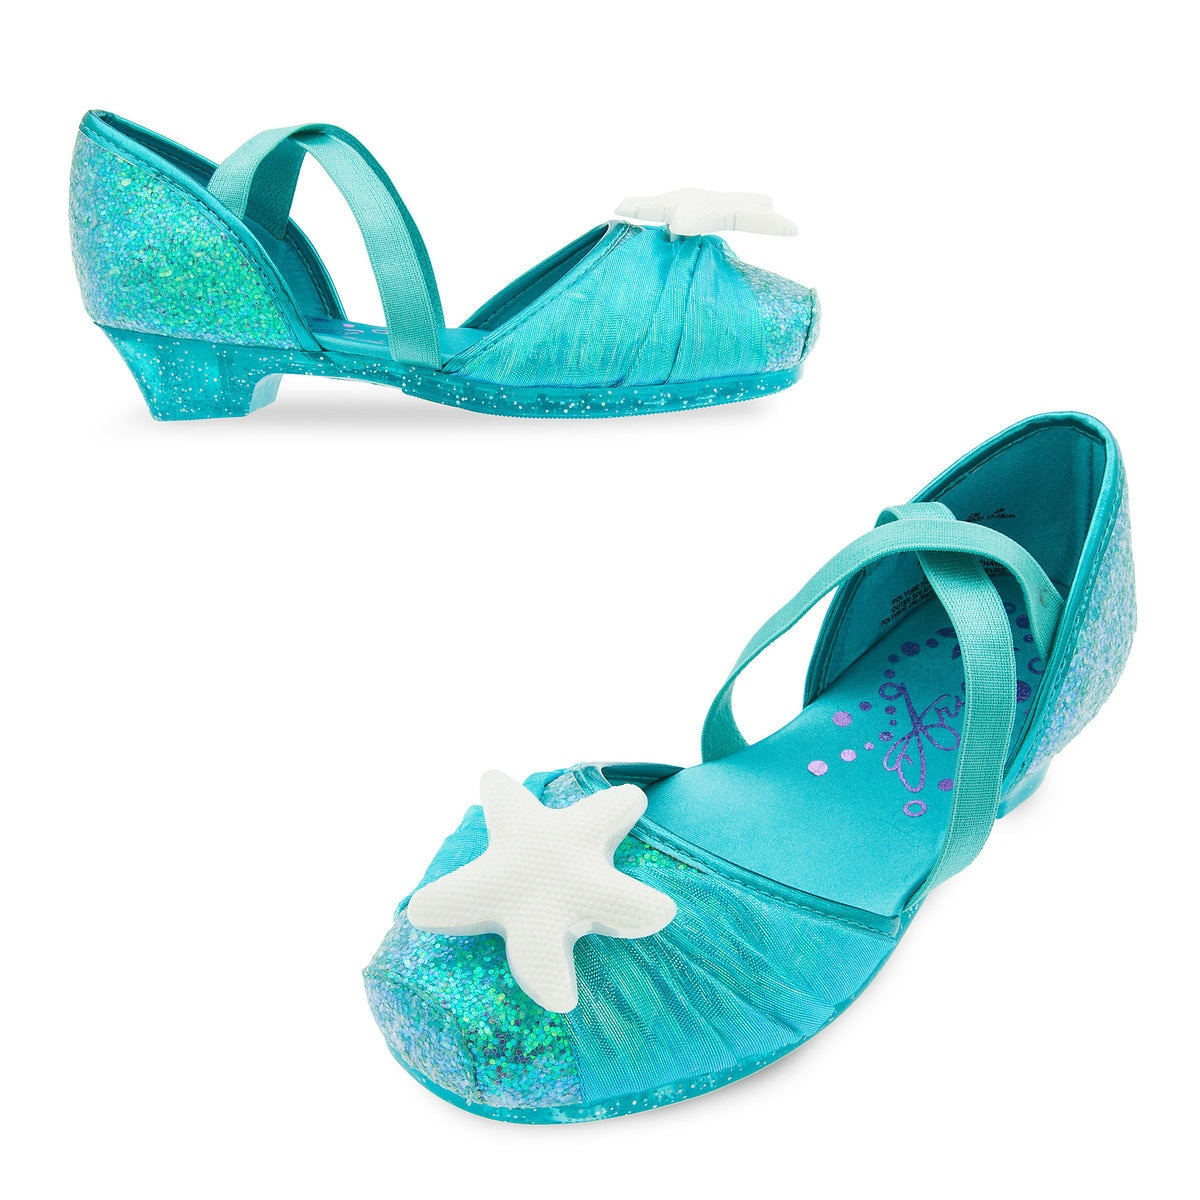 f447067a1375 Product Image of Ariel Costume Shoes for Kids   1